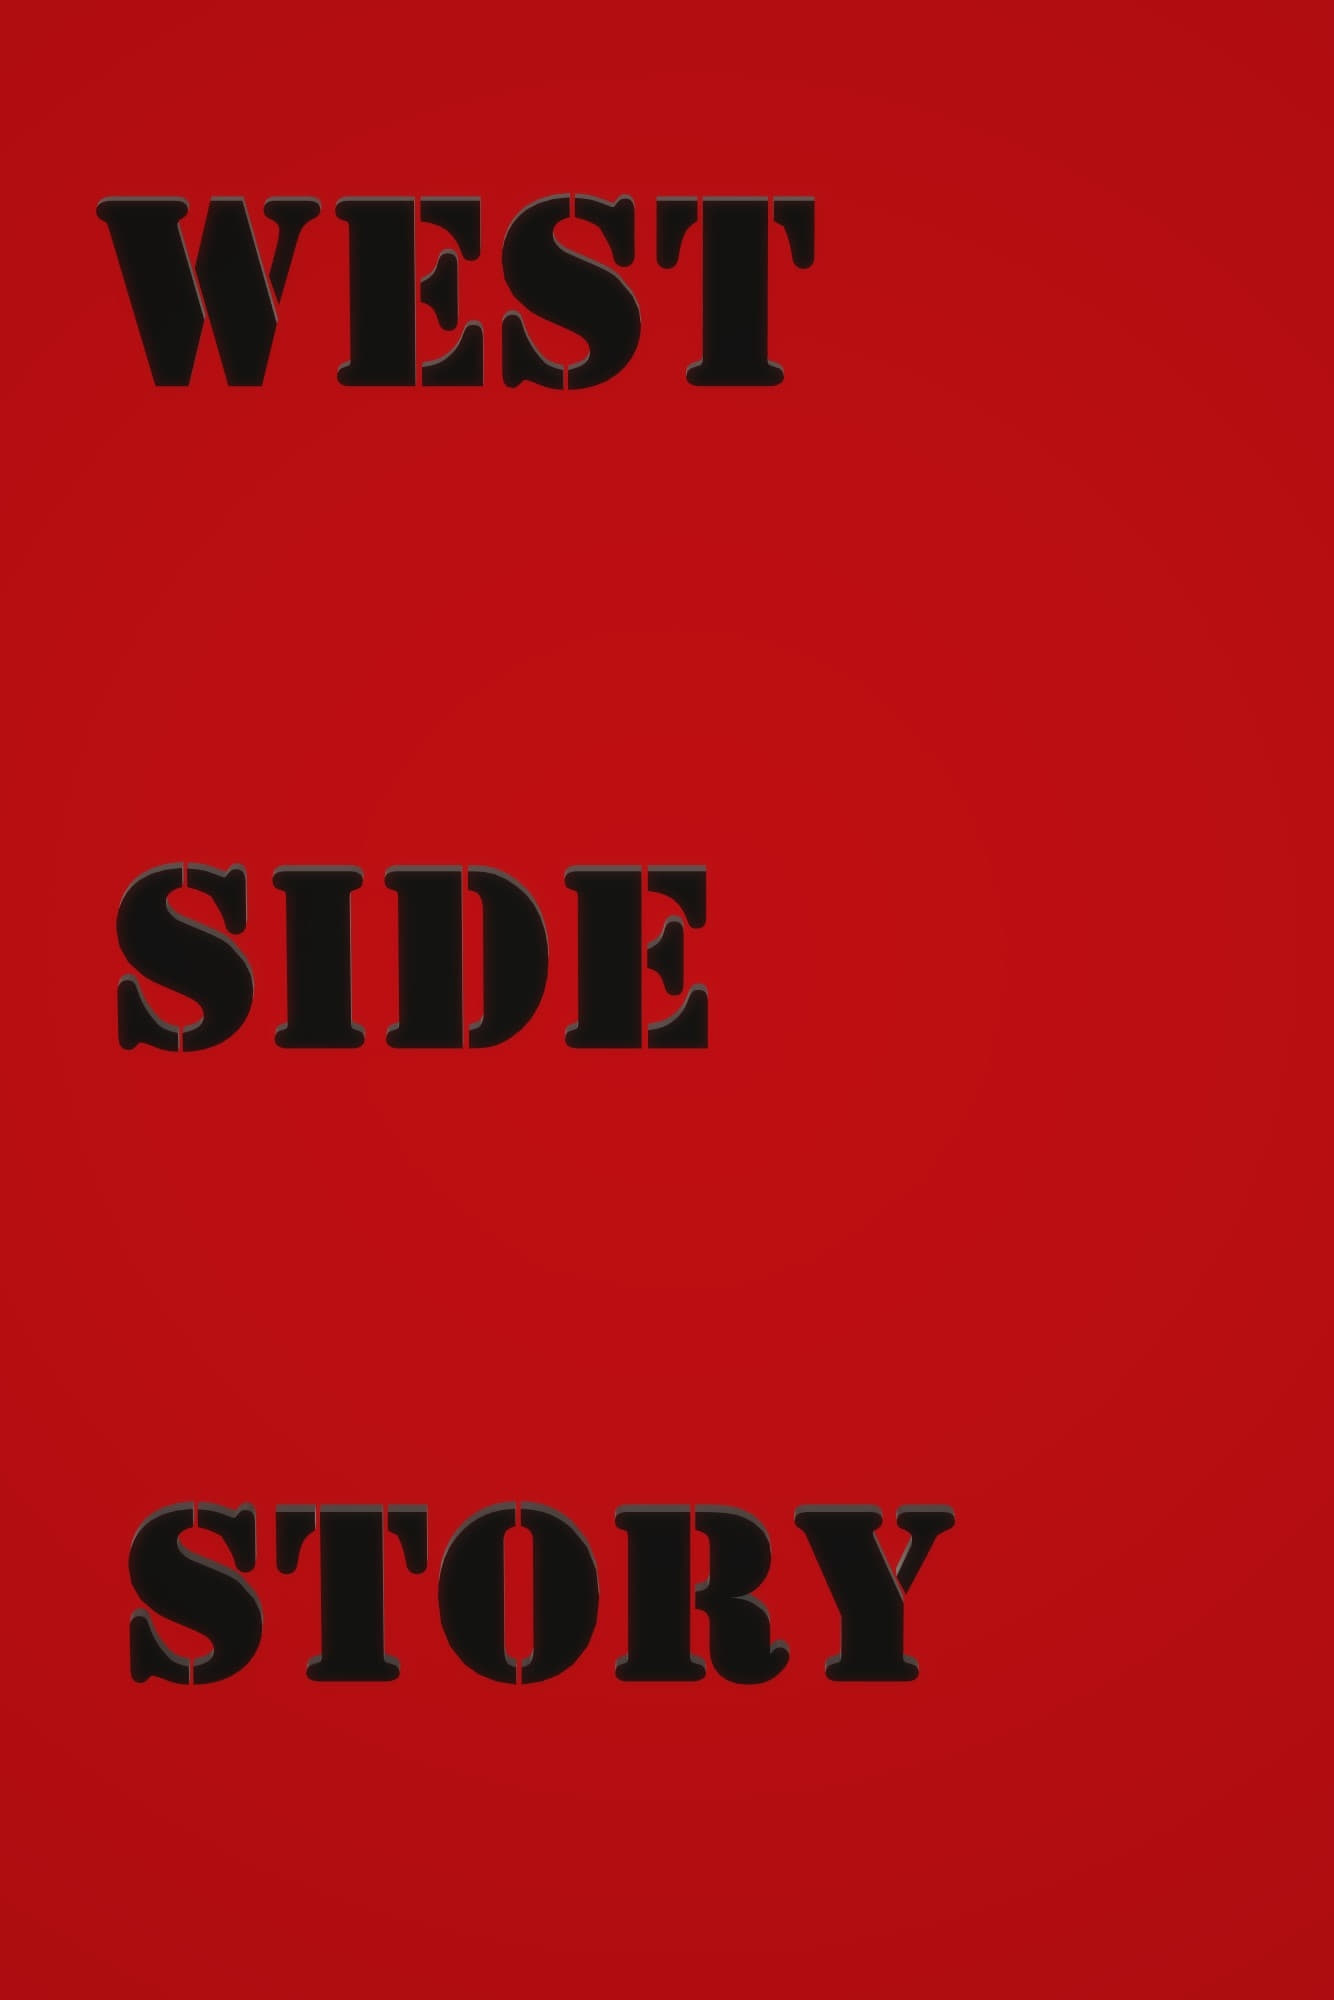 West Side Story Streaming : story, streaming, Watch, Story, (2020), Movie, Online